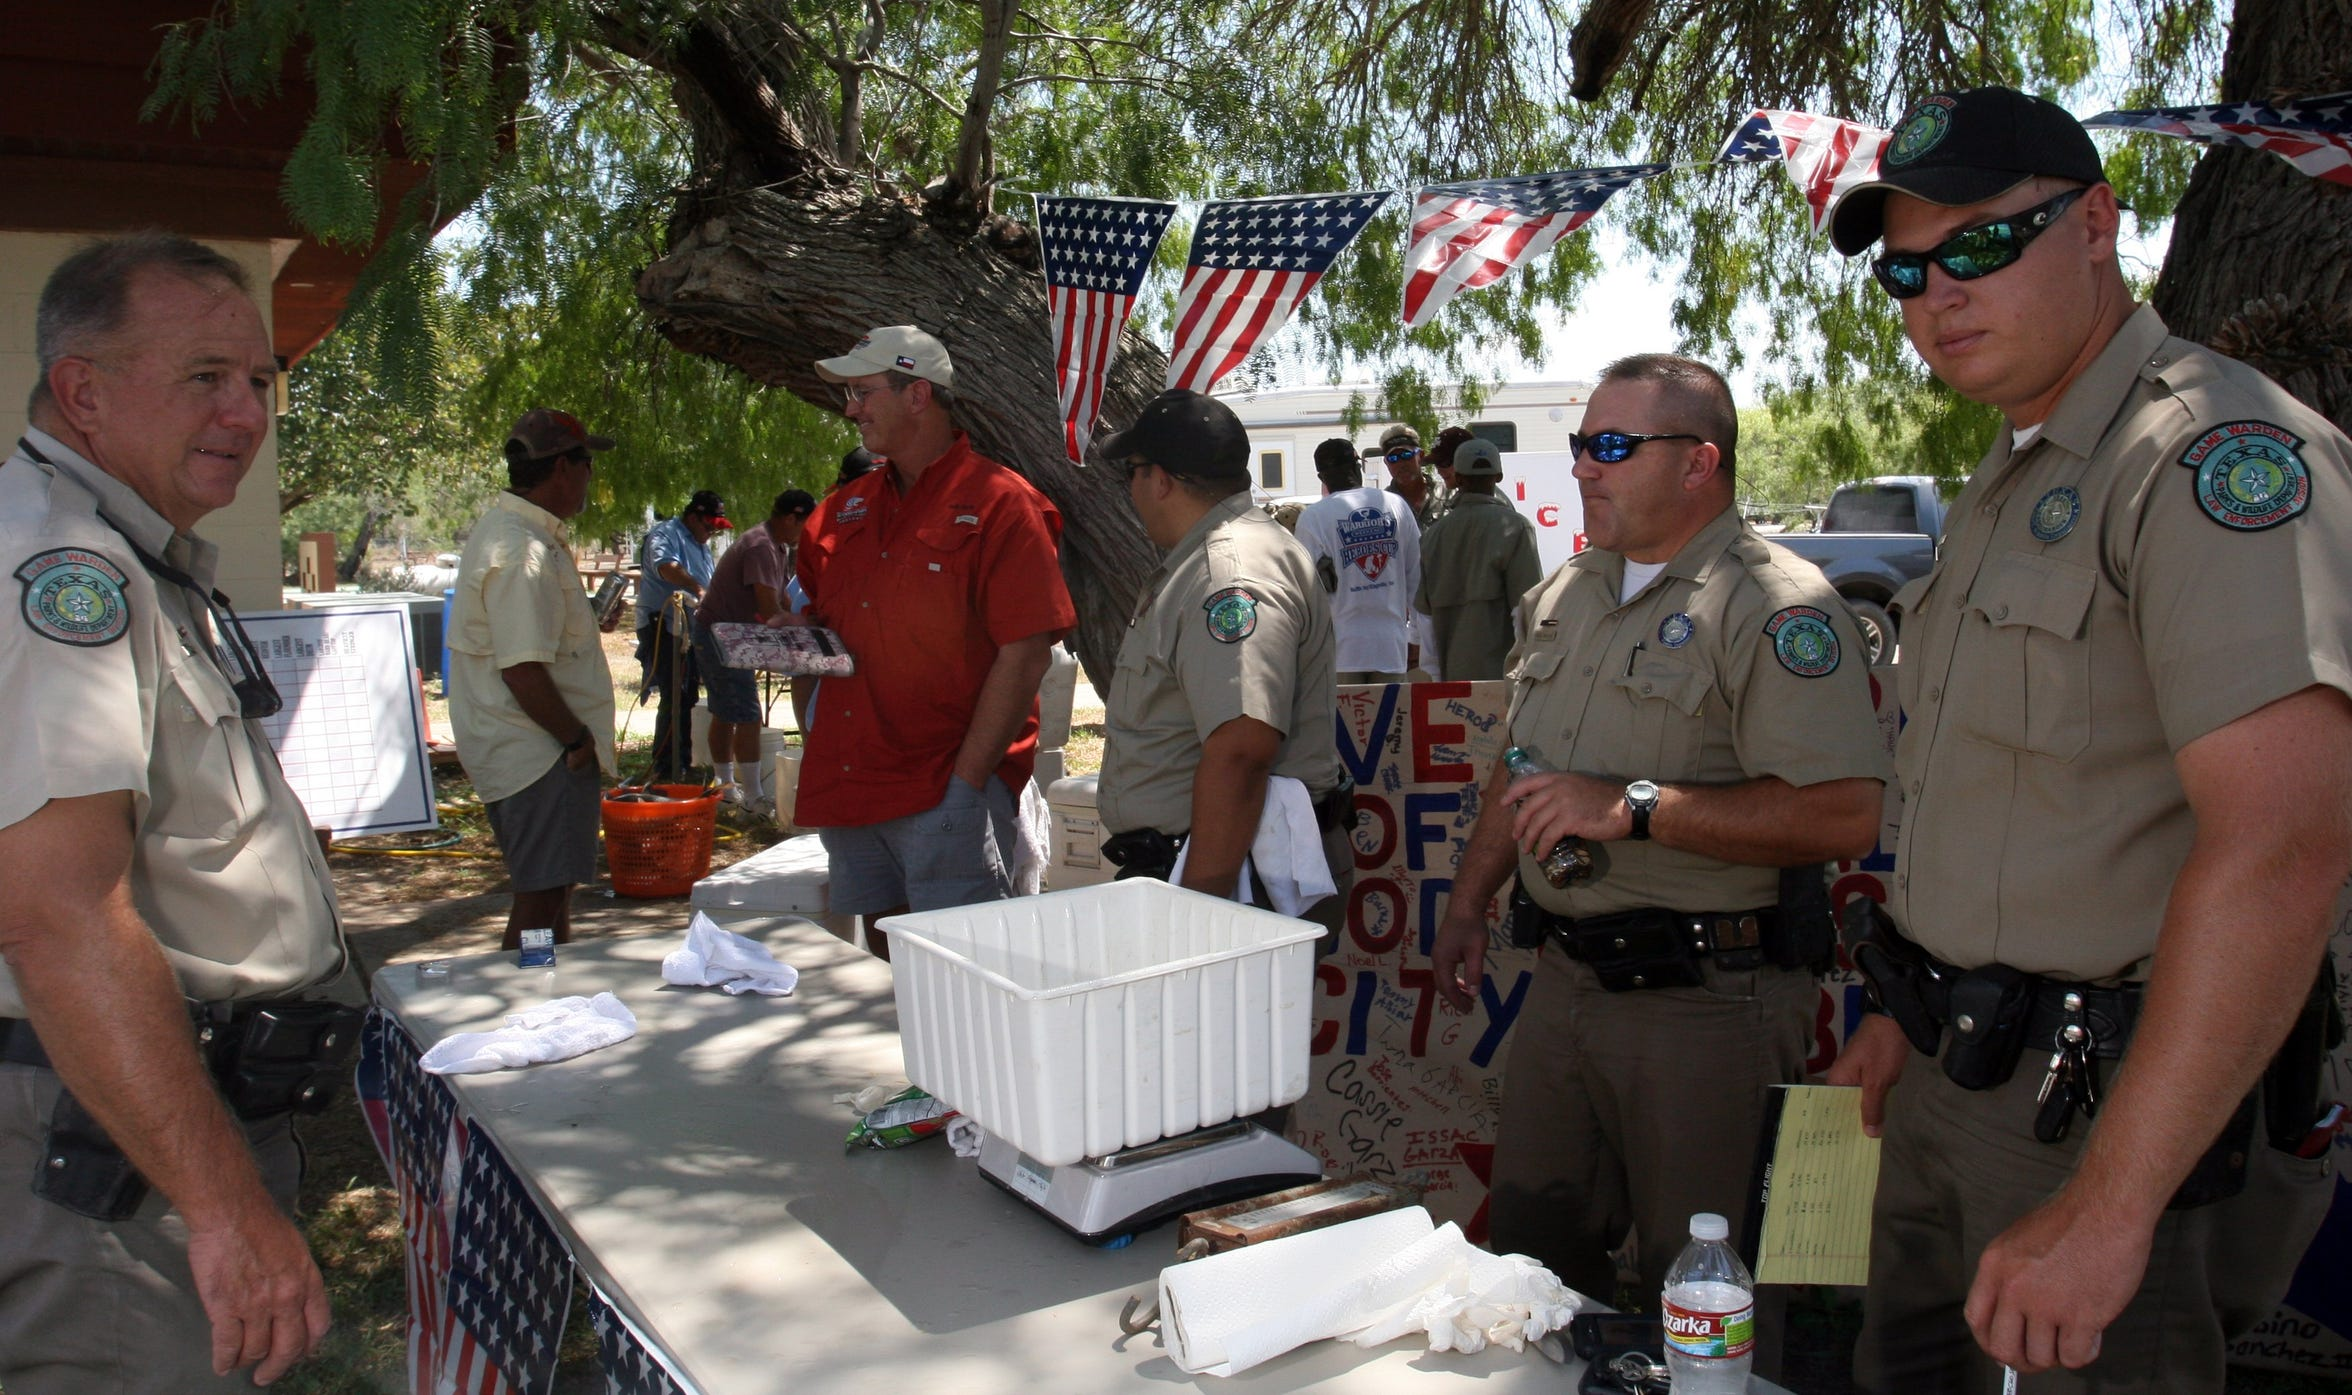 Texas Game Wardens act as weighmasters during a Warrior's Weekend Heroes Cup at Baffin Bay.